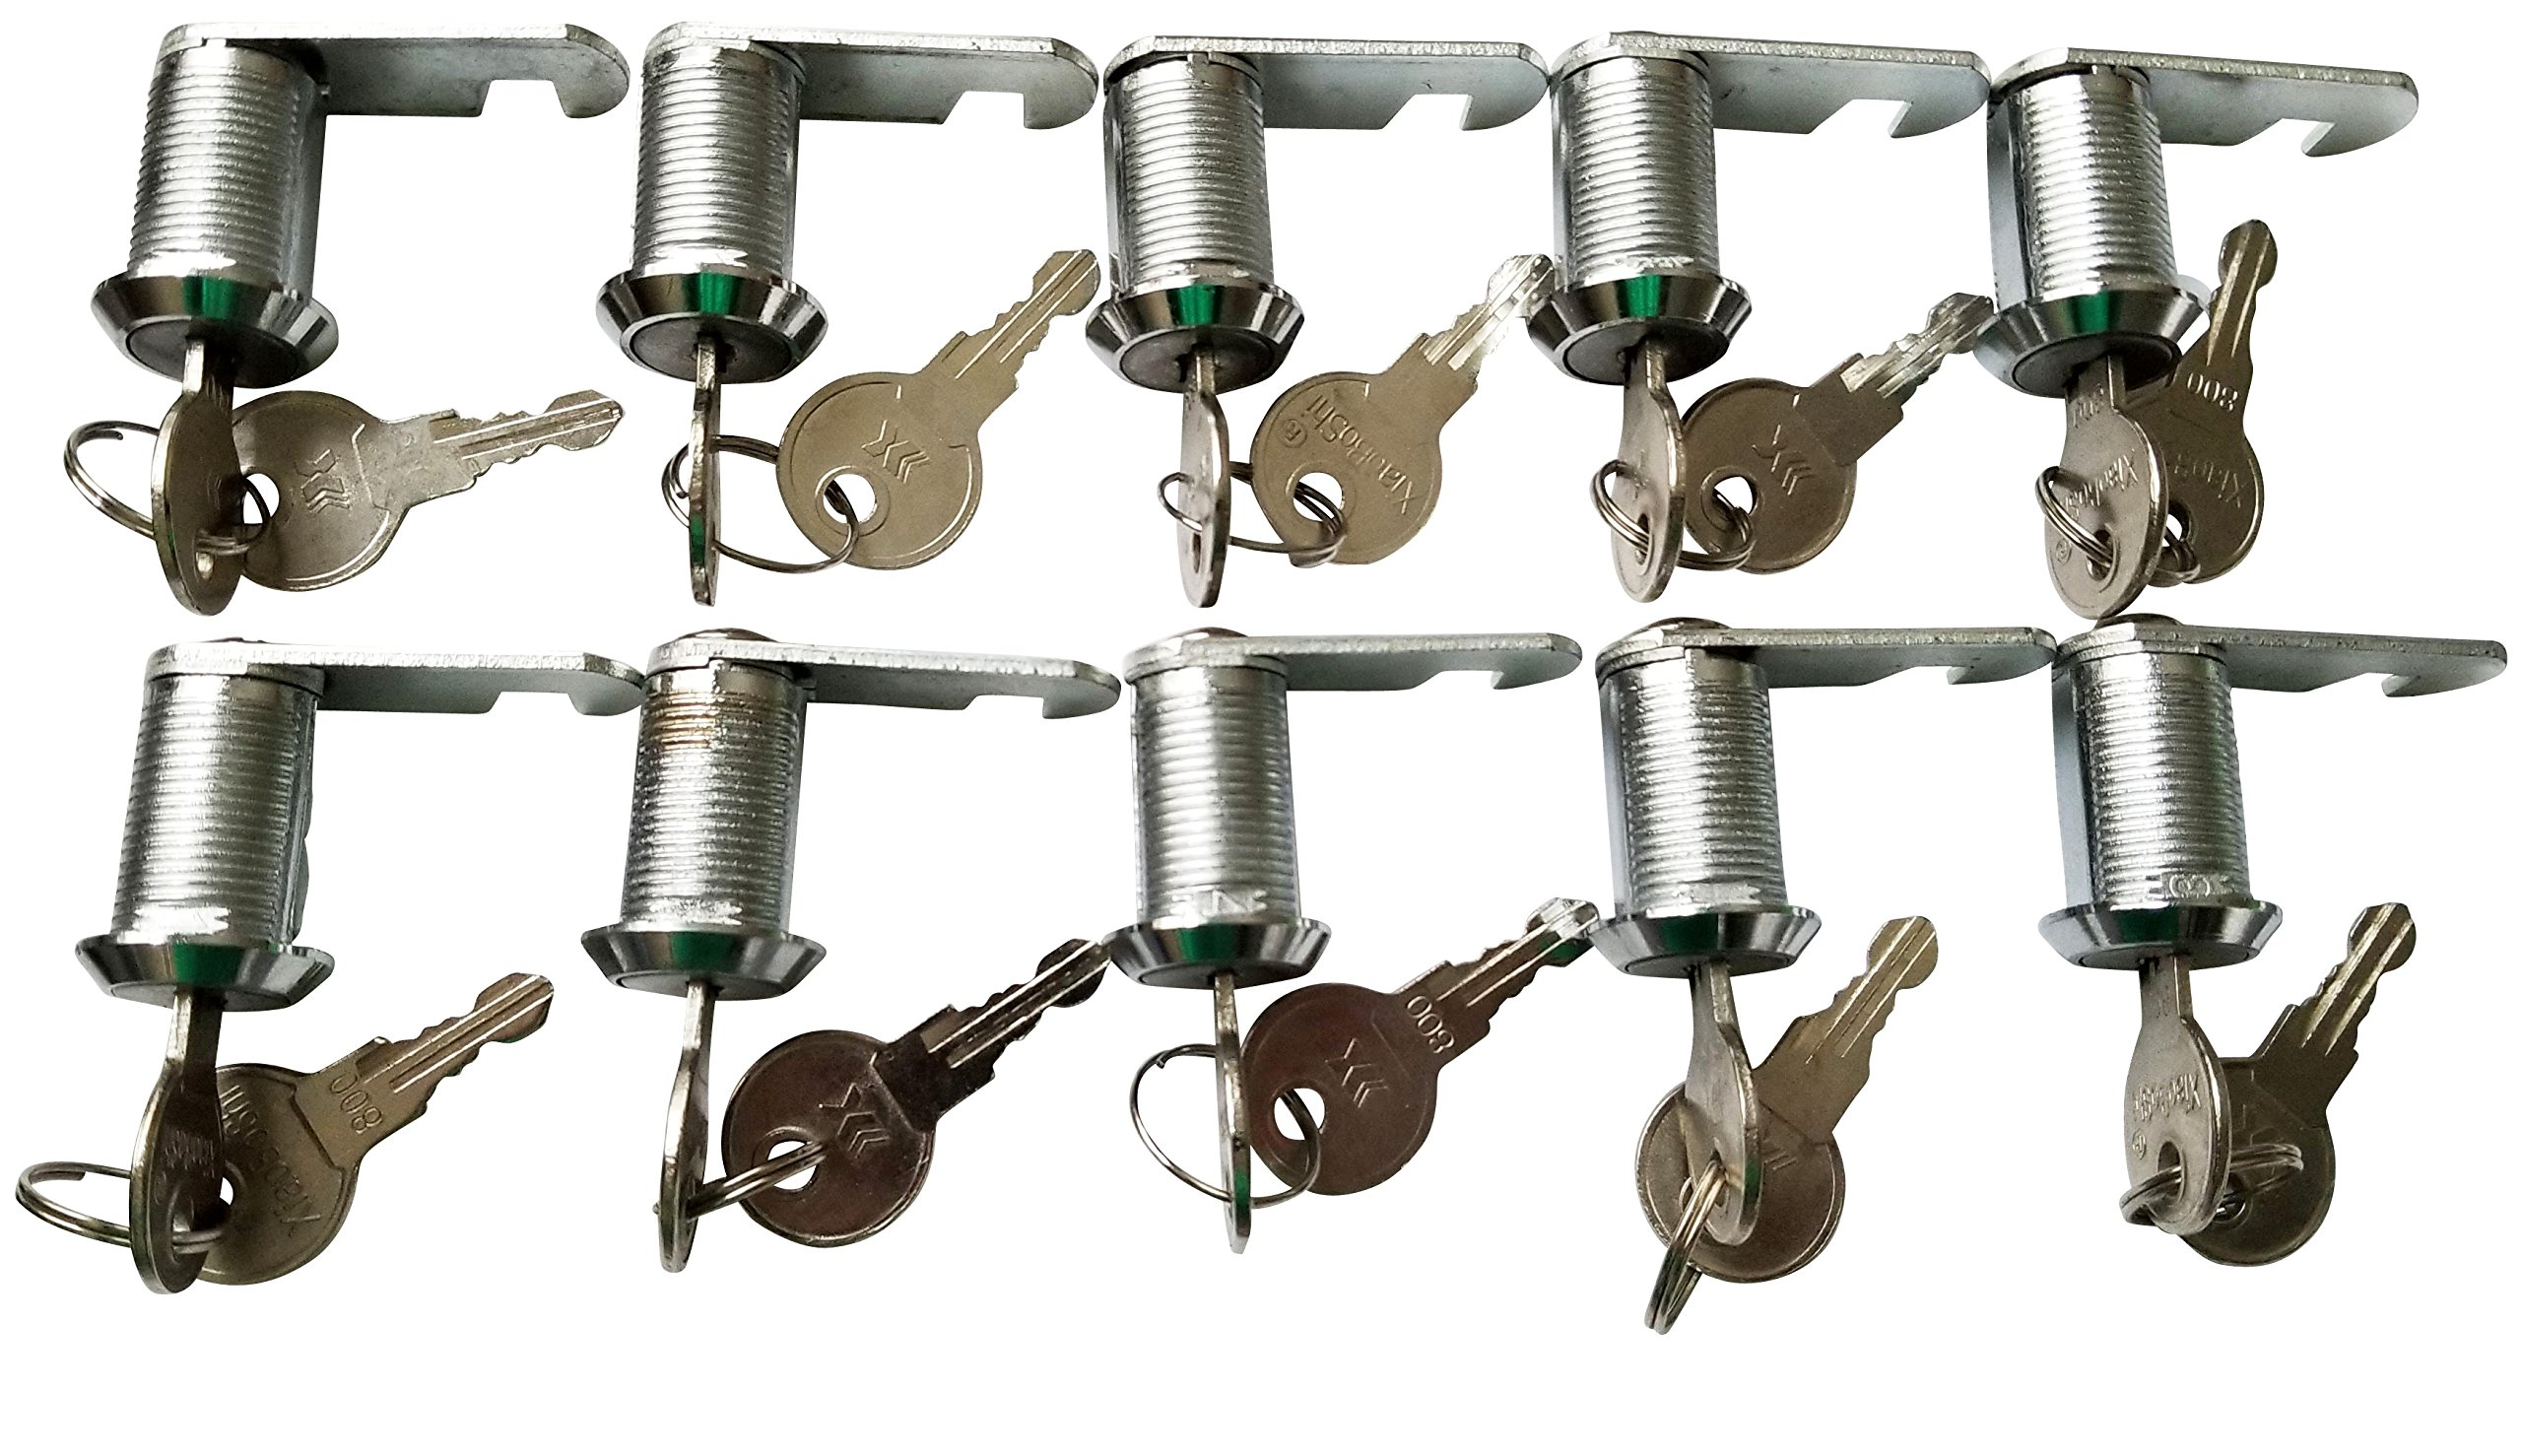 7/8 inch or 25mm Cam Lock with Flat Keys. 25mm 7/8 Cylinder and Chrome Finish, Keyed Alike (Pack of 10)